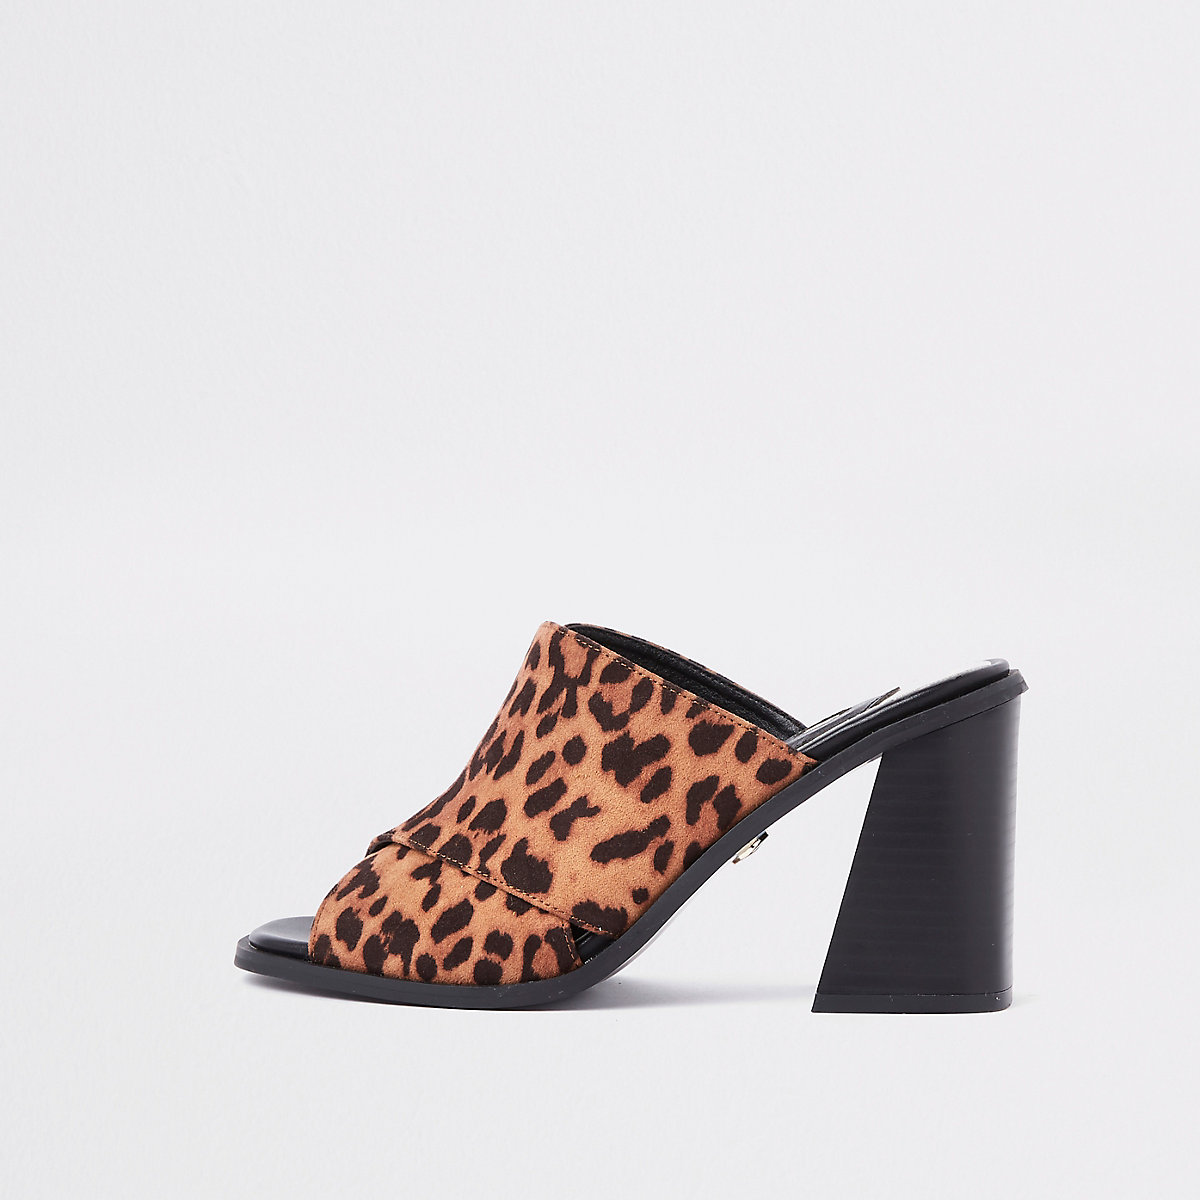 Brown animal print block heel mule sandals